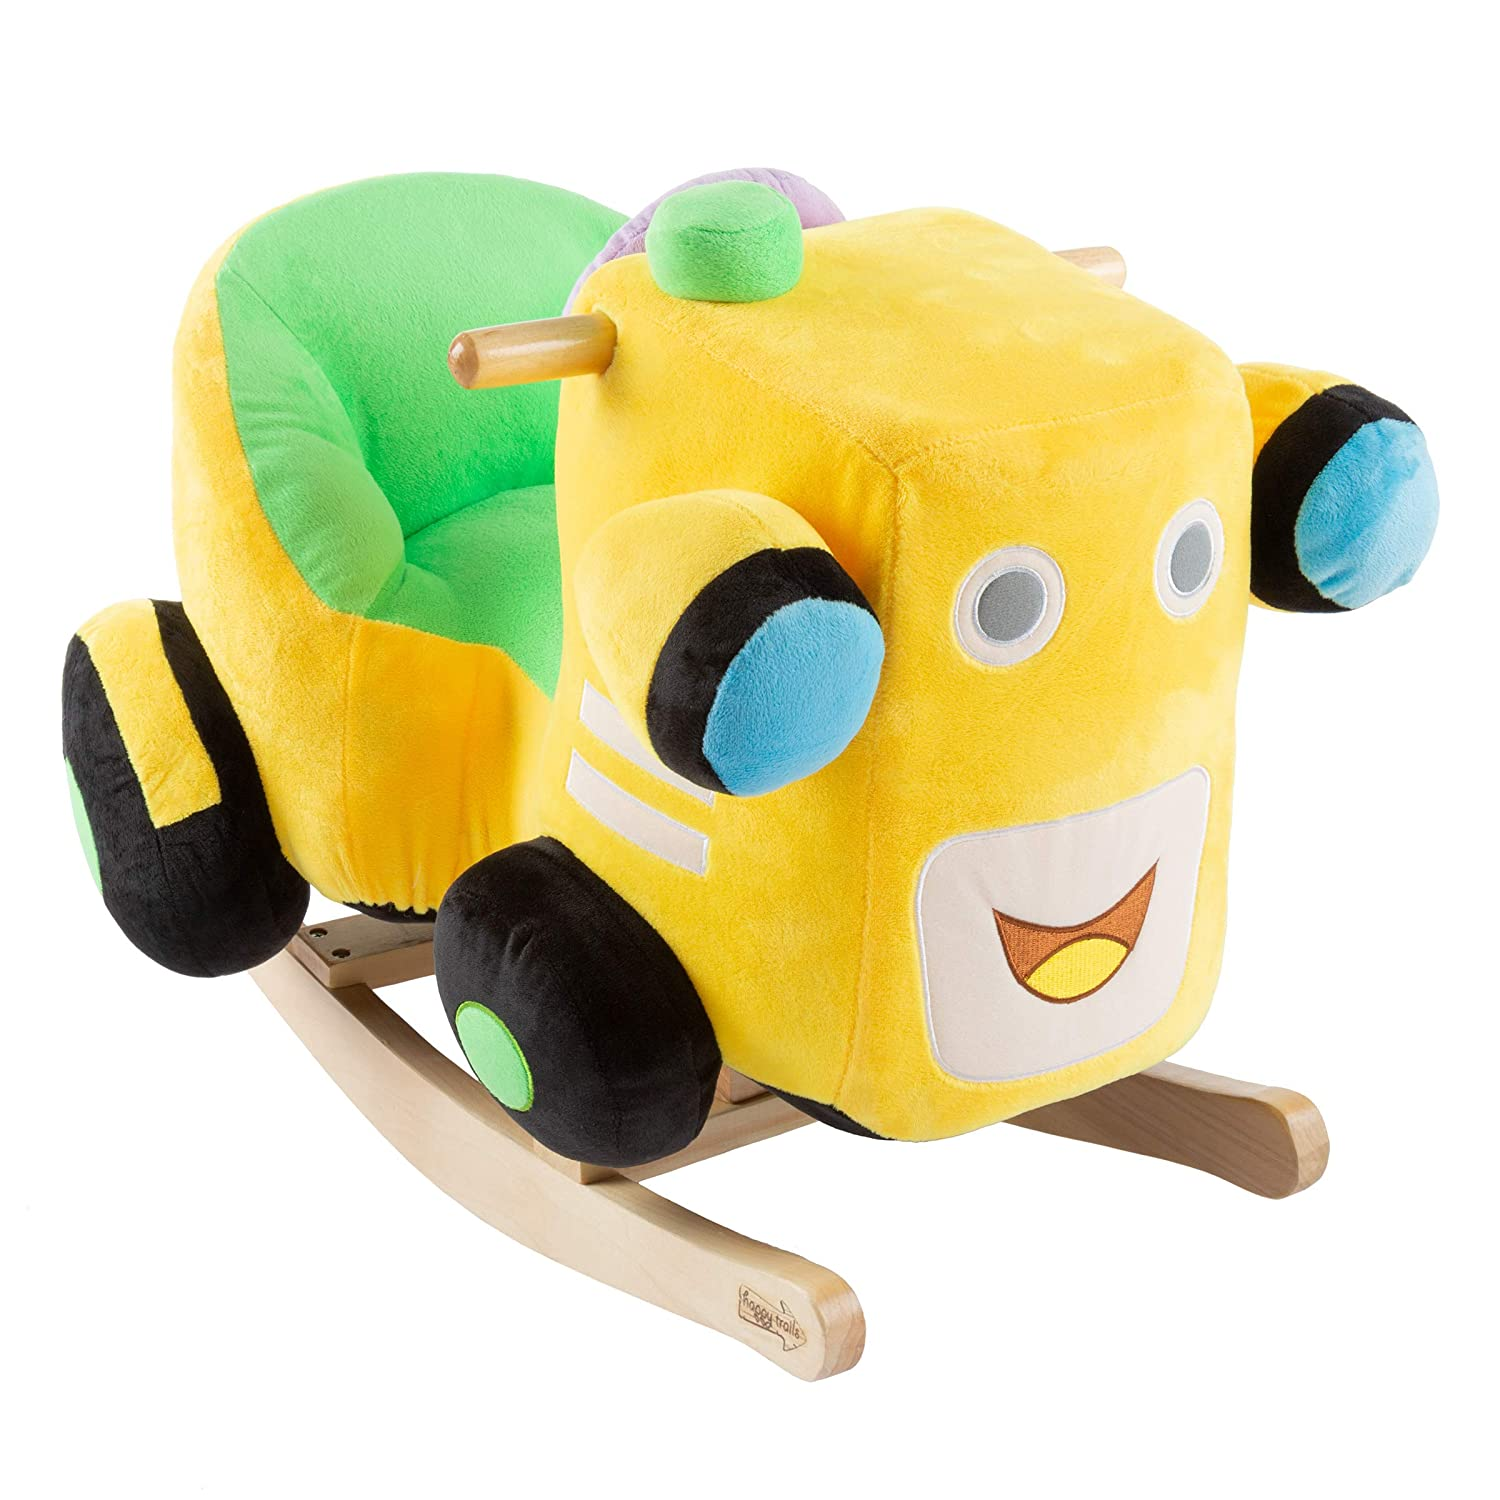 Happy Trails Rocking Train Toy Toddlers Trademark 80-680TRN Girls Kids Ride Plush Stuffed Ride on Wooden Rockers with Sounds and Handles-Make Believe Fun for Boys